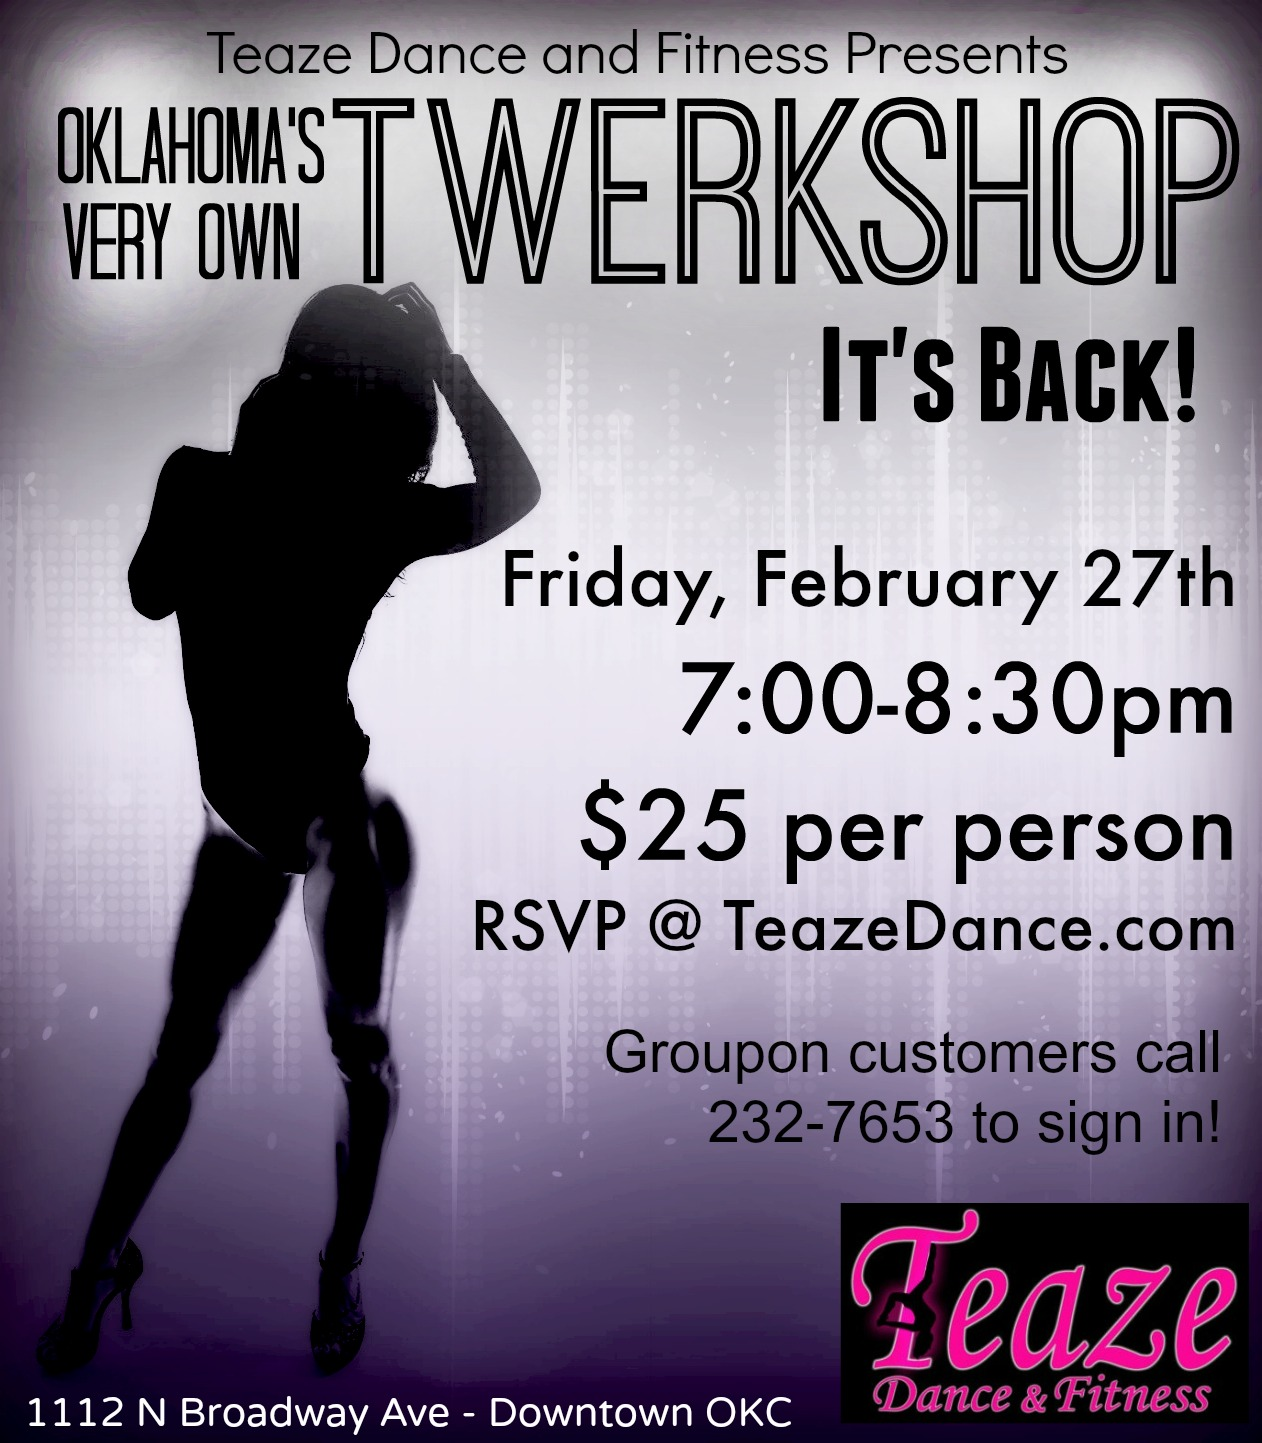 Twerkshop 2015 Mock